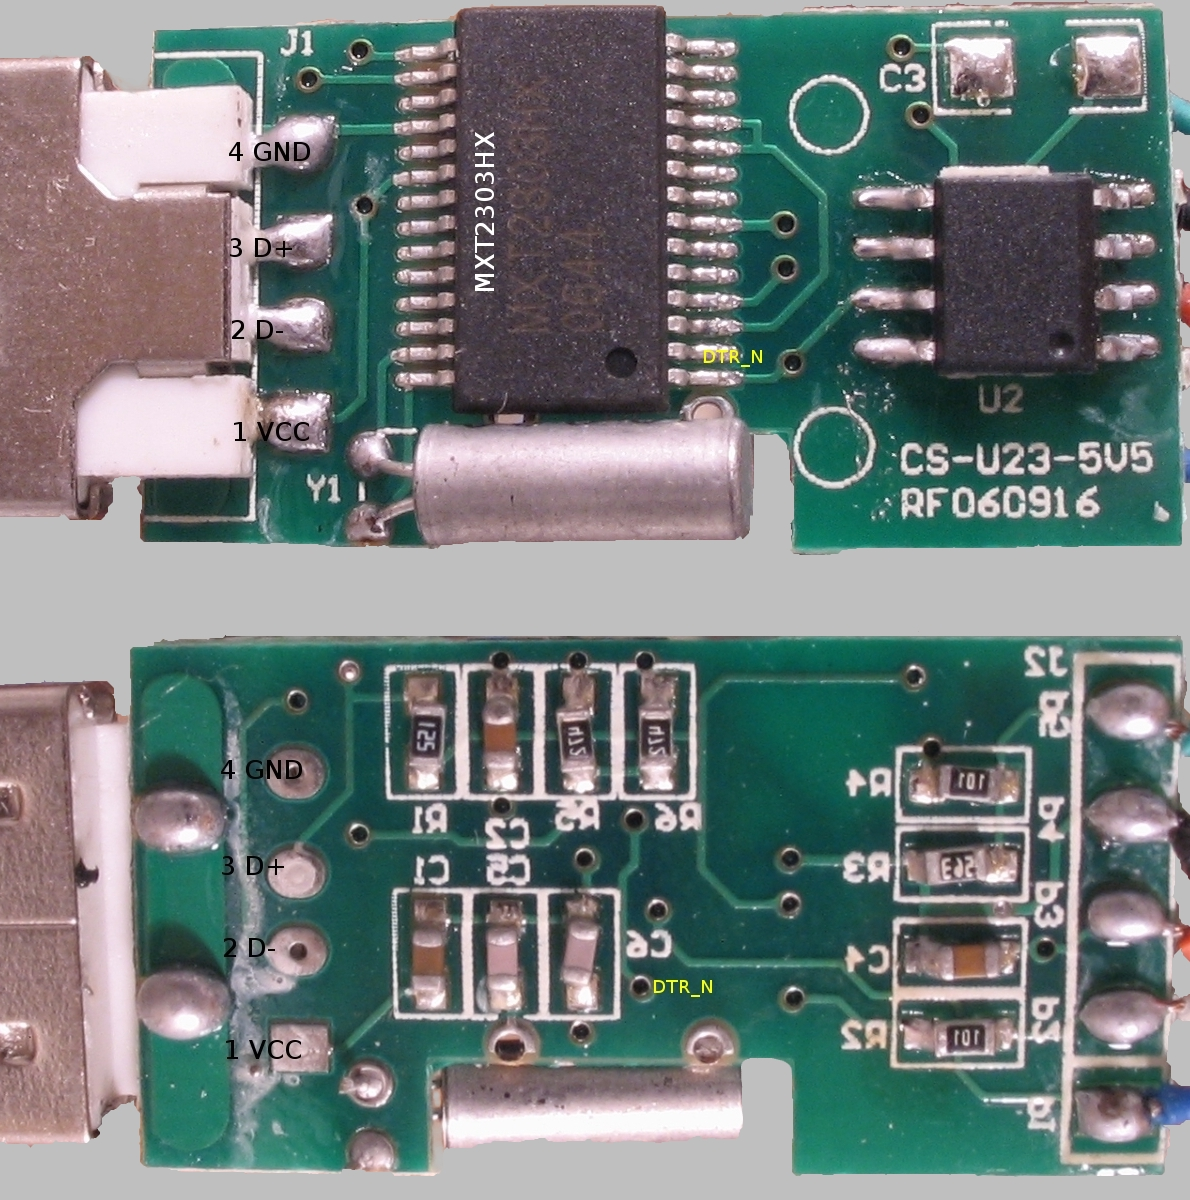 Diy Usb To Serial Cable For 3 Jonathan Thomsons Web Journal Rs232 Adapter Schematic Circuit Hd Walls Find The Casing Around